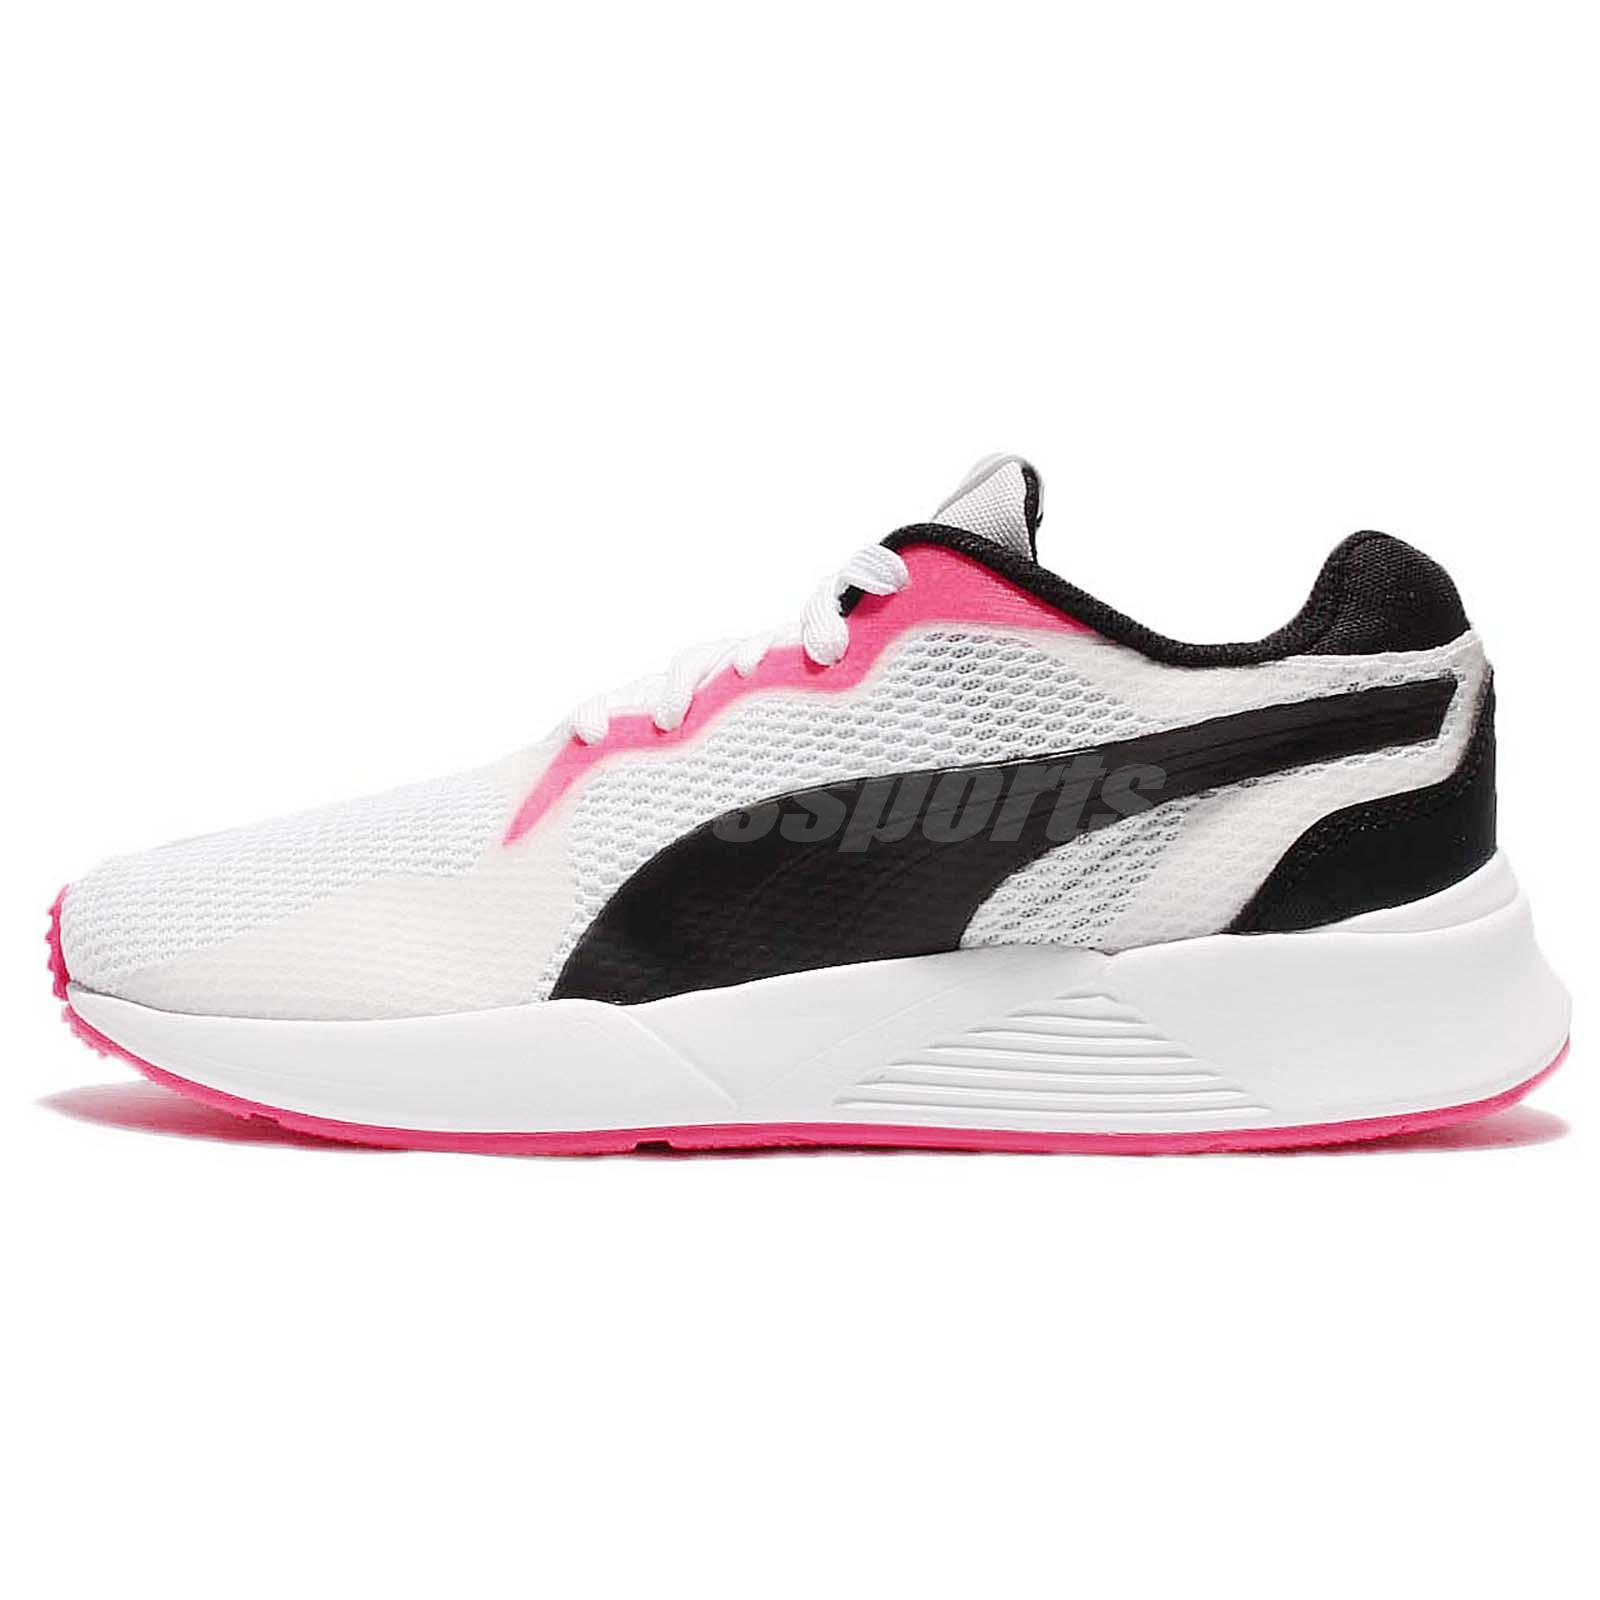 Puma Pacer Plus Tech White Black Men Running Shoes Sneakers Trainers  363338-04